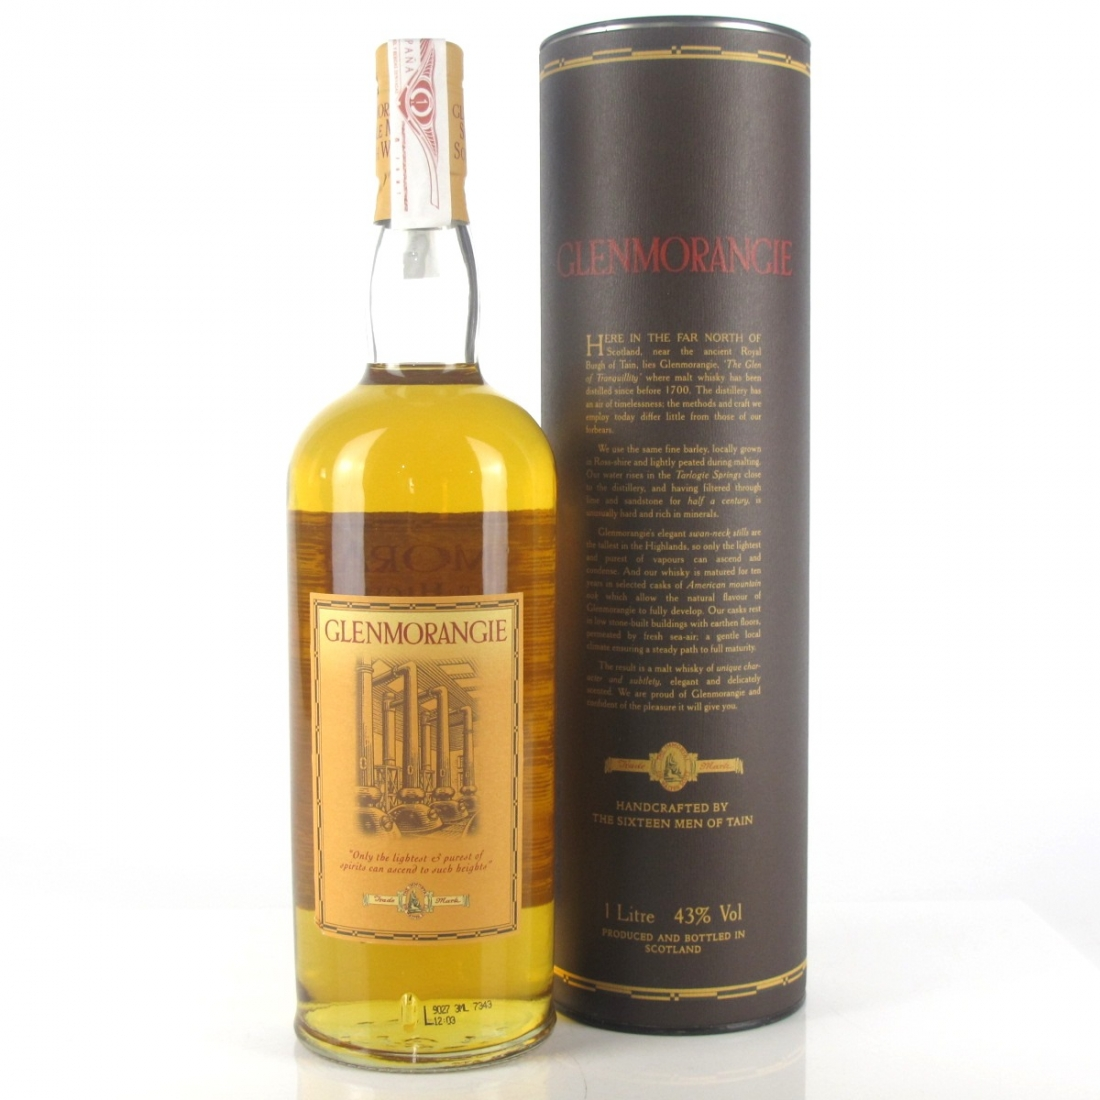 Glenmorangie 10 Year Old 1 Litre